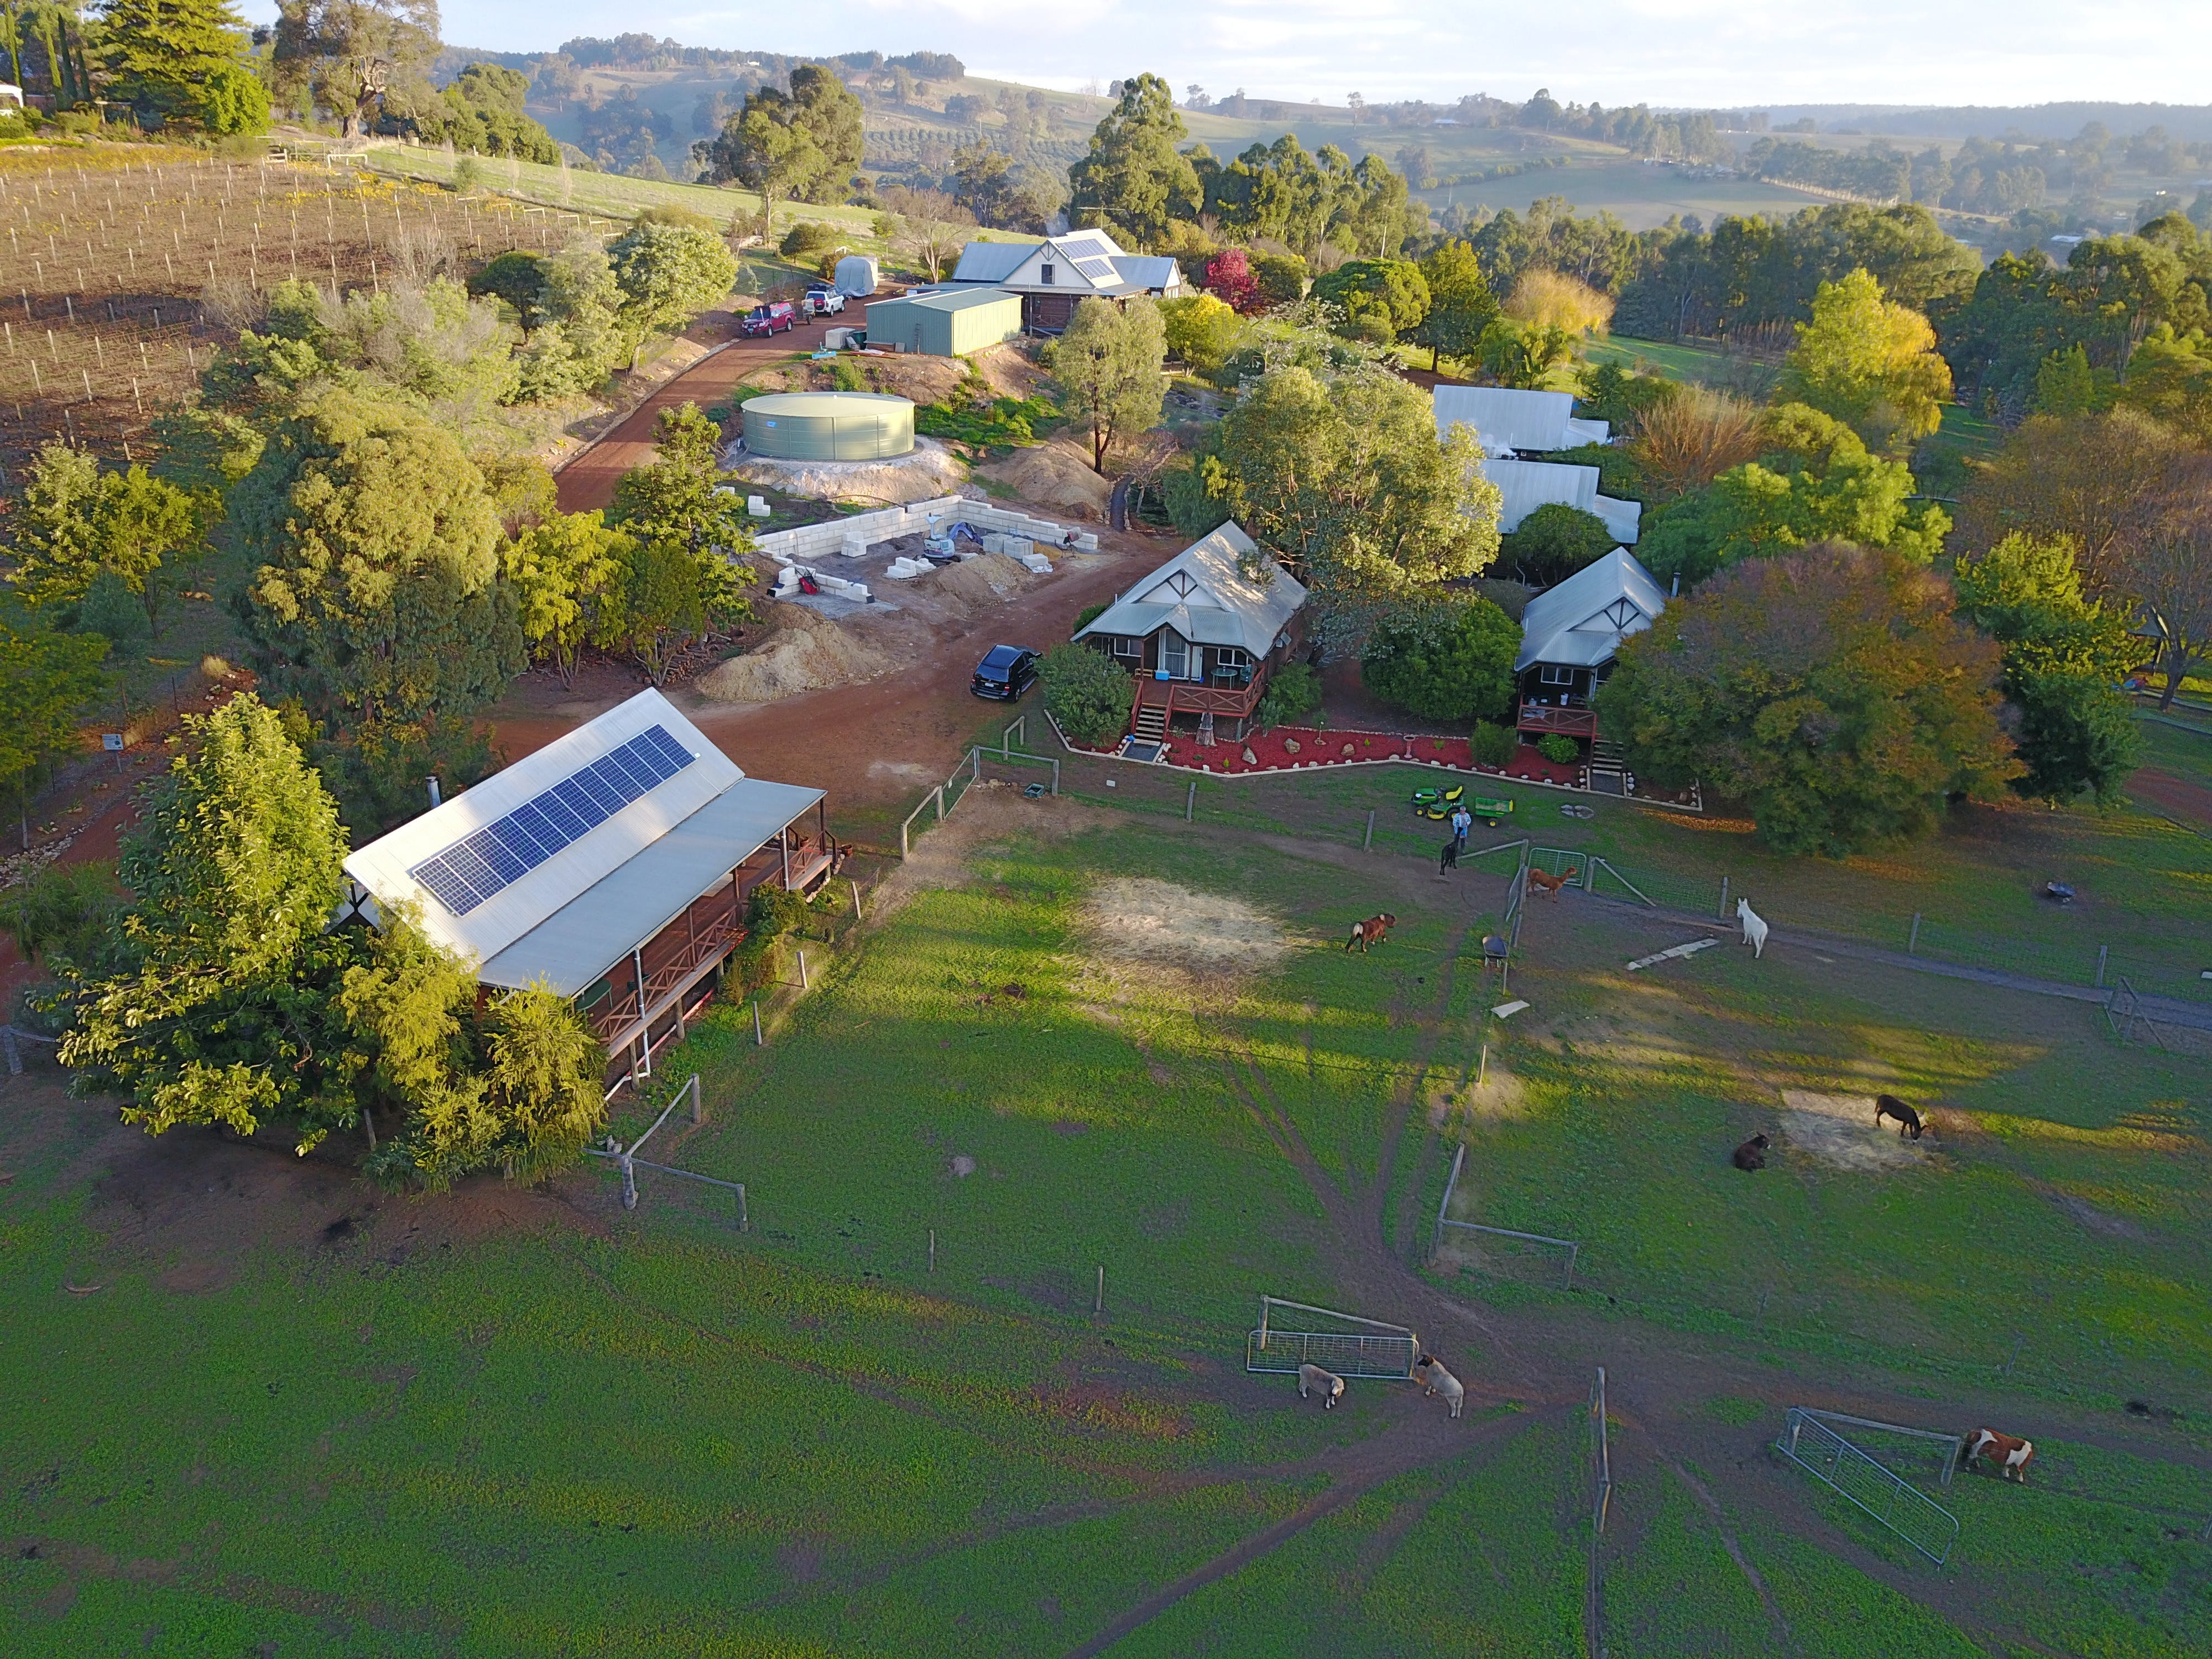 Sunnyhurst Chalets Farmstay - Perisher Accommodation